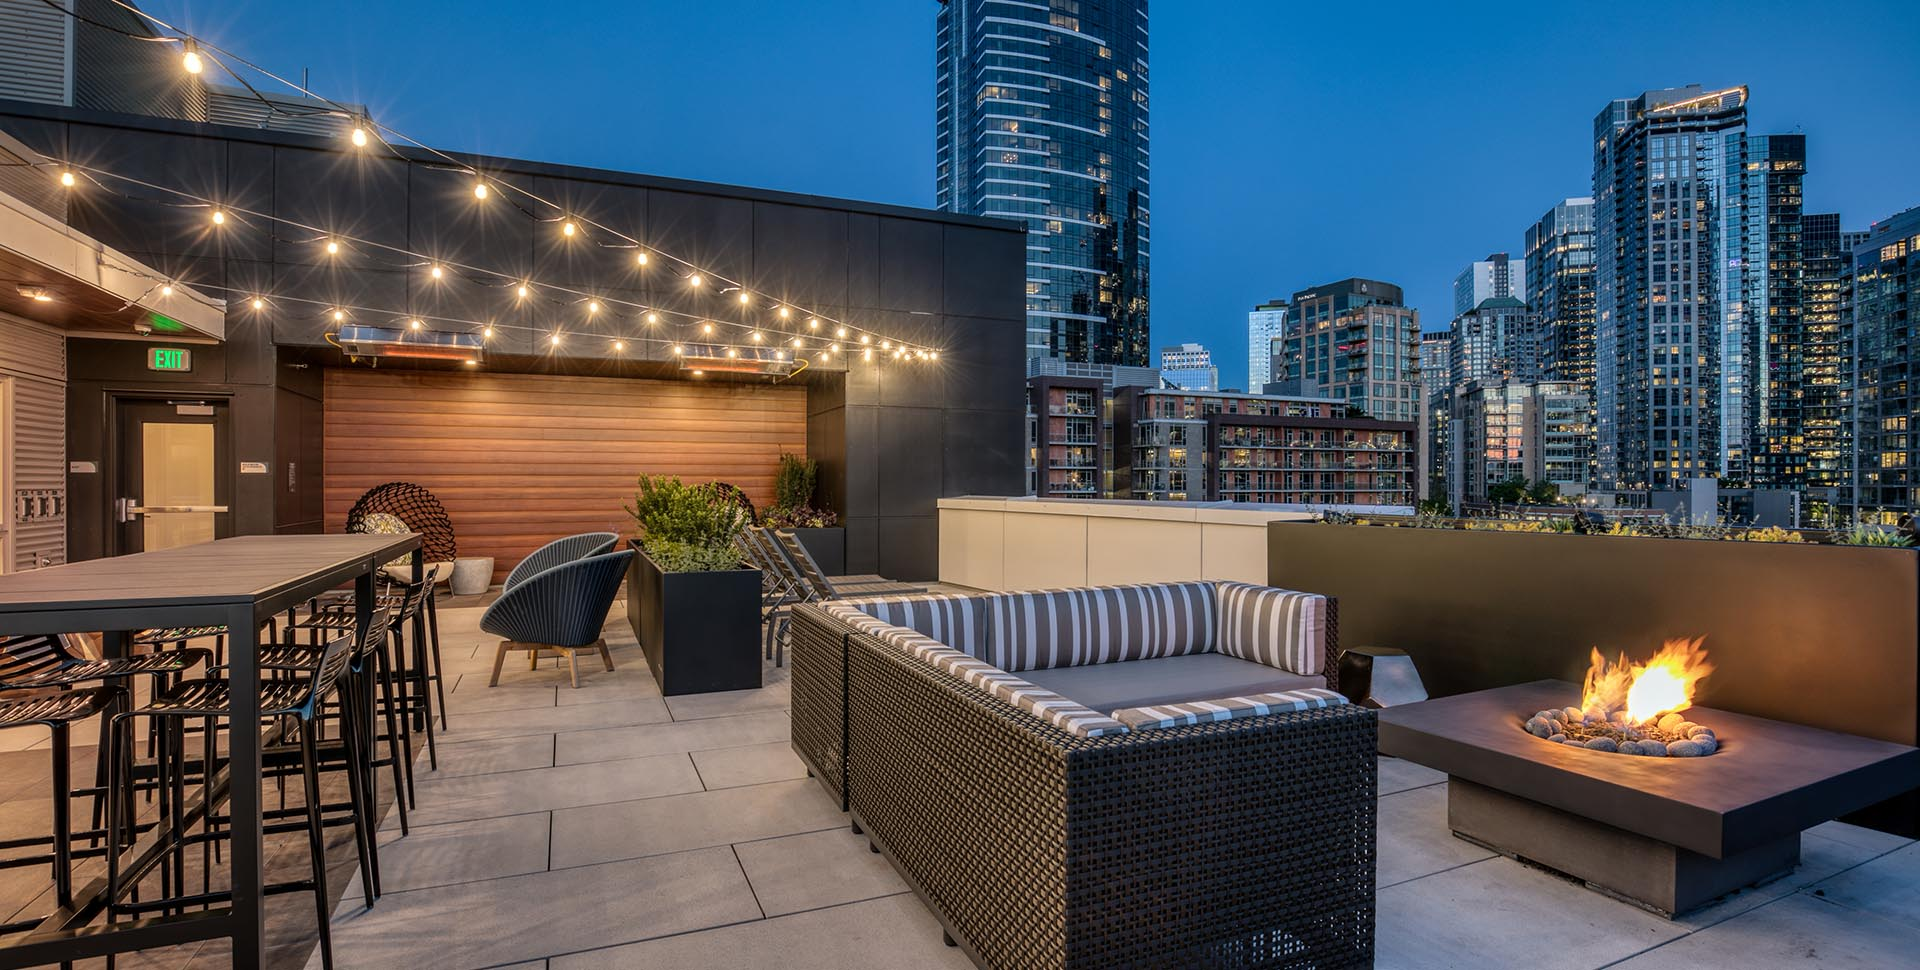 Image of Orion Rooftop Deck